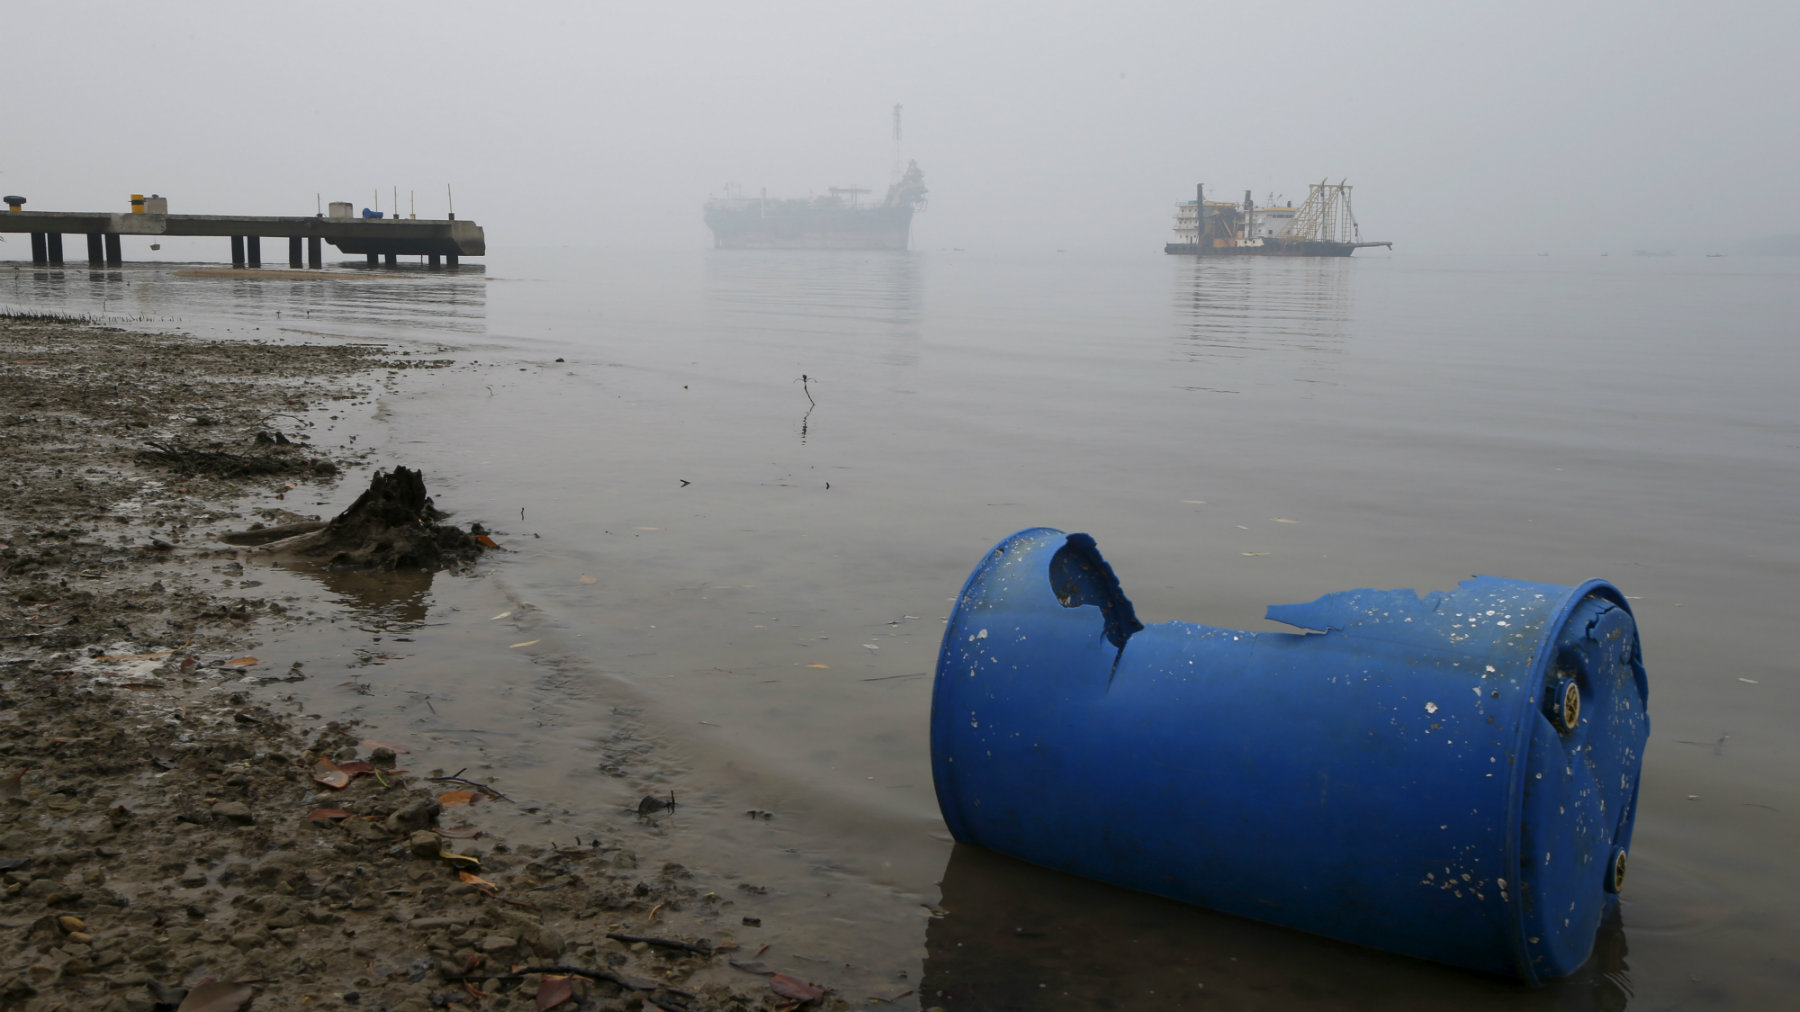 An idle oil exploration vessel (L) is shrouded by haze in the Johor River in Malaysia's southern state of Johor October 6, 2015. Renewables are powering a rare bright spot in the energy industry, with record job hiring in solar, wind and hydro partly offsetting the biggest round of job losses in the oil and gas sector in almost two decades. The boom in new green jobs is being led by Asia where governments in countries such as China and India are embarking on massive programmes to use more renewable energy. Picture taken October 6, 2015. To match ENERGY-EMPLOYMENT/ REUTERS/Edgar Su